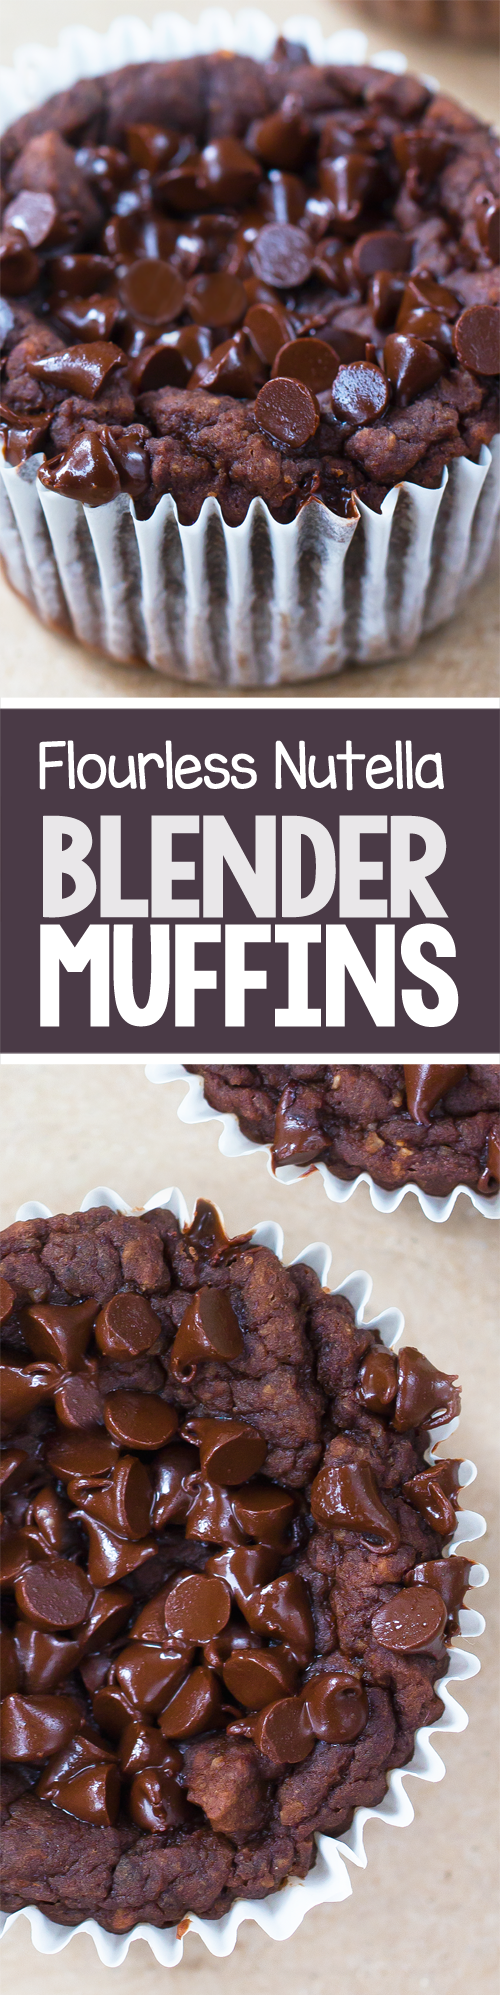 Flourless Nutella Blender Muffins, super healthy recipe!